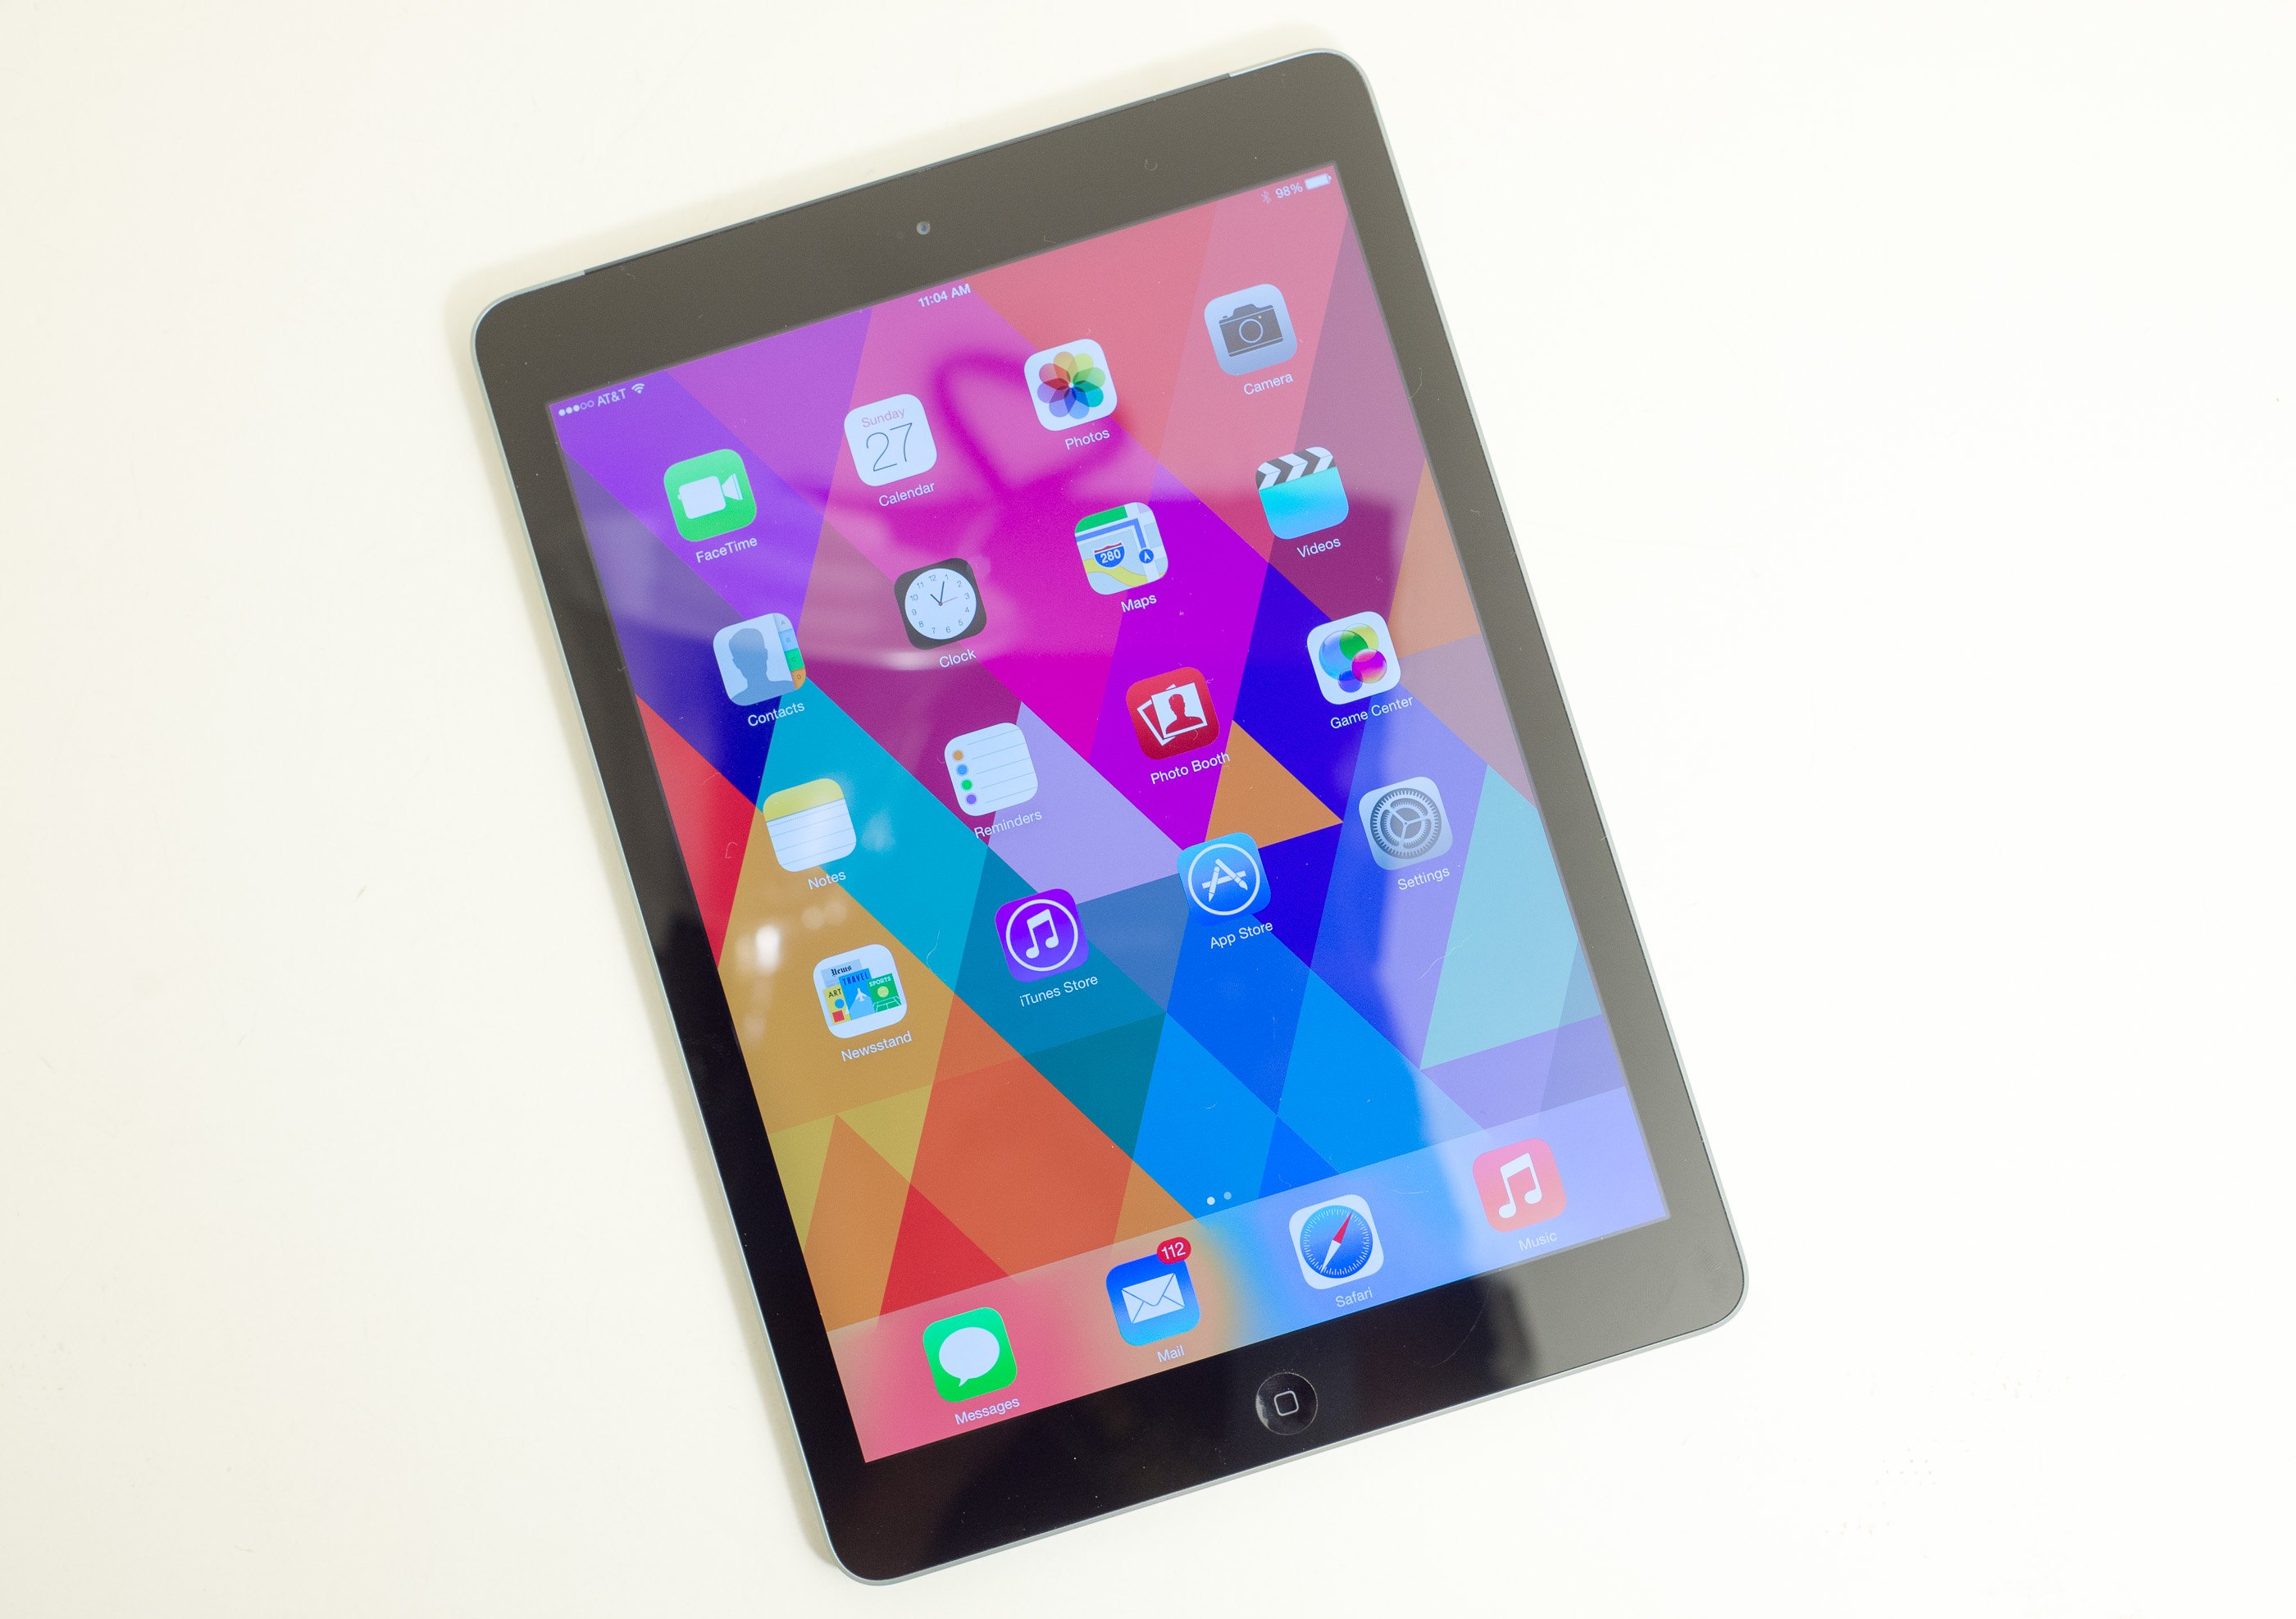 how to get more ram on ipad mini